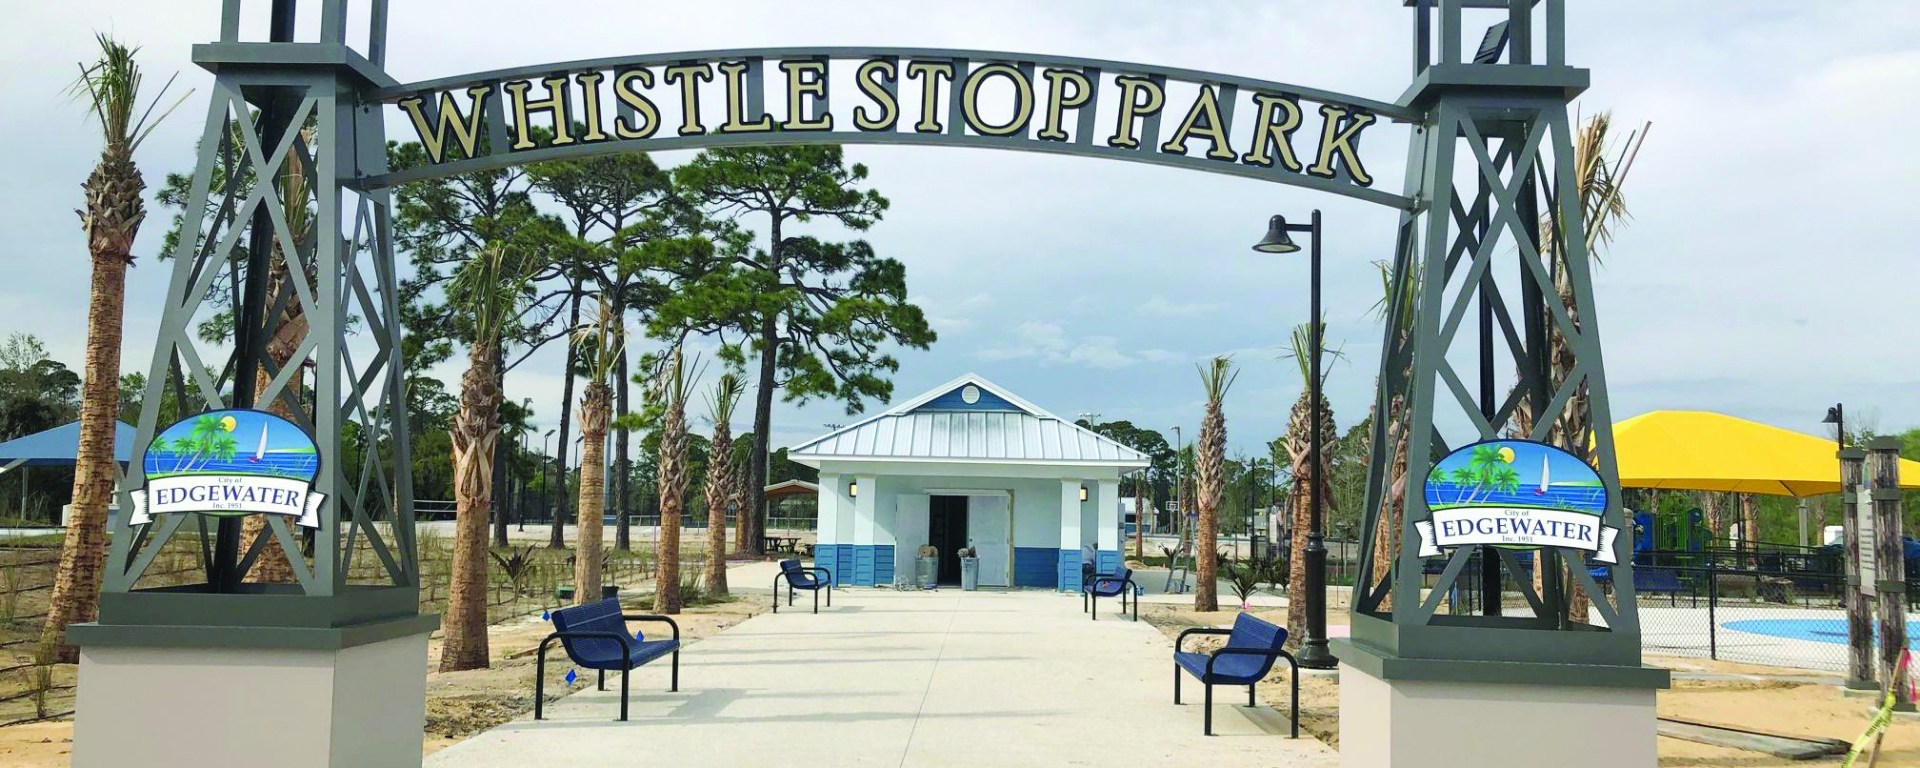 Whistle Stop Park entrance